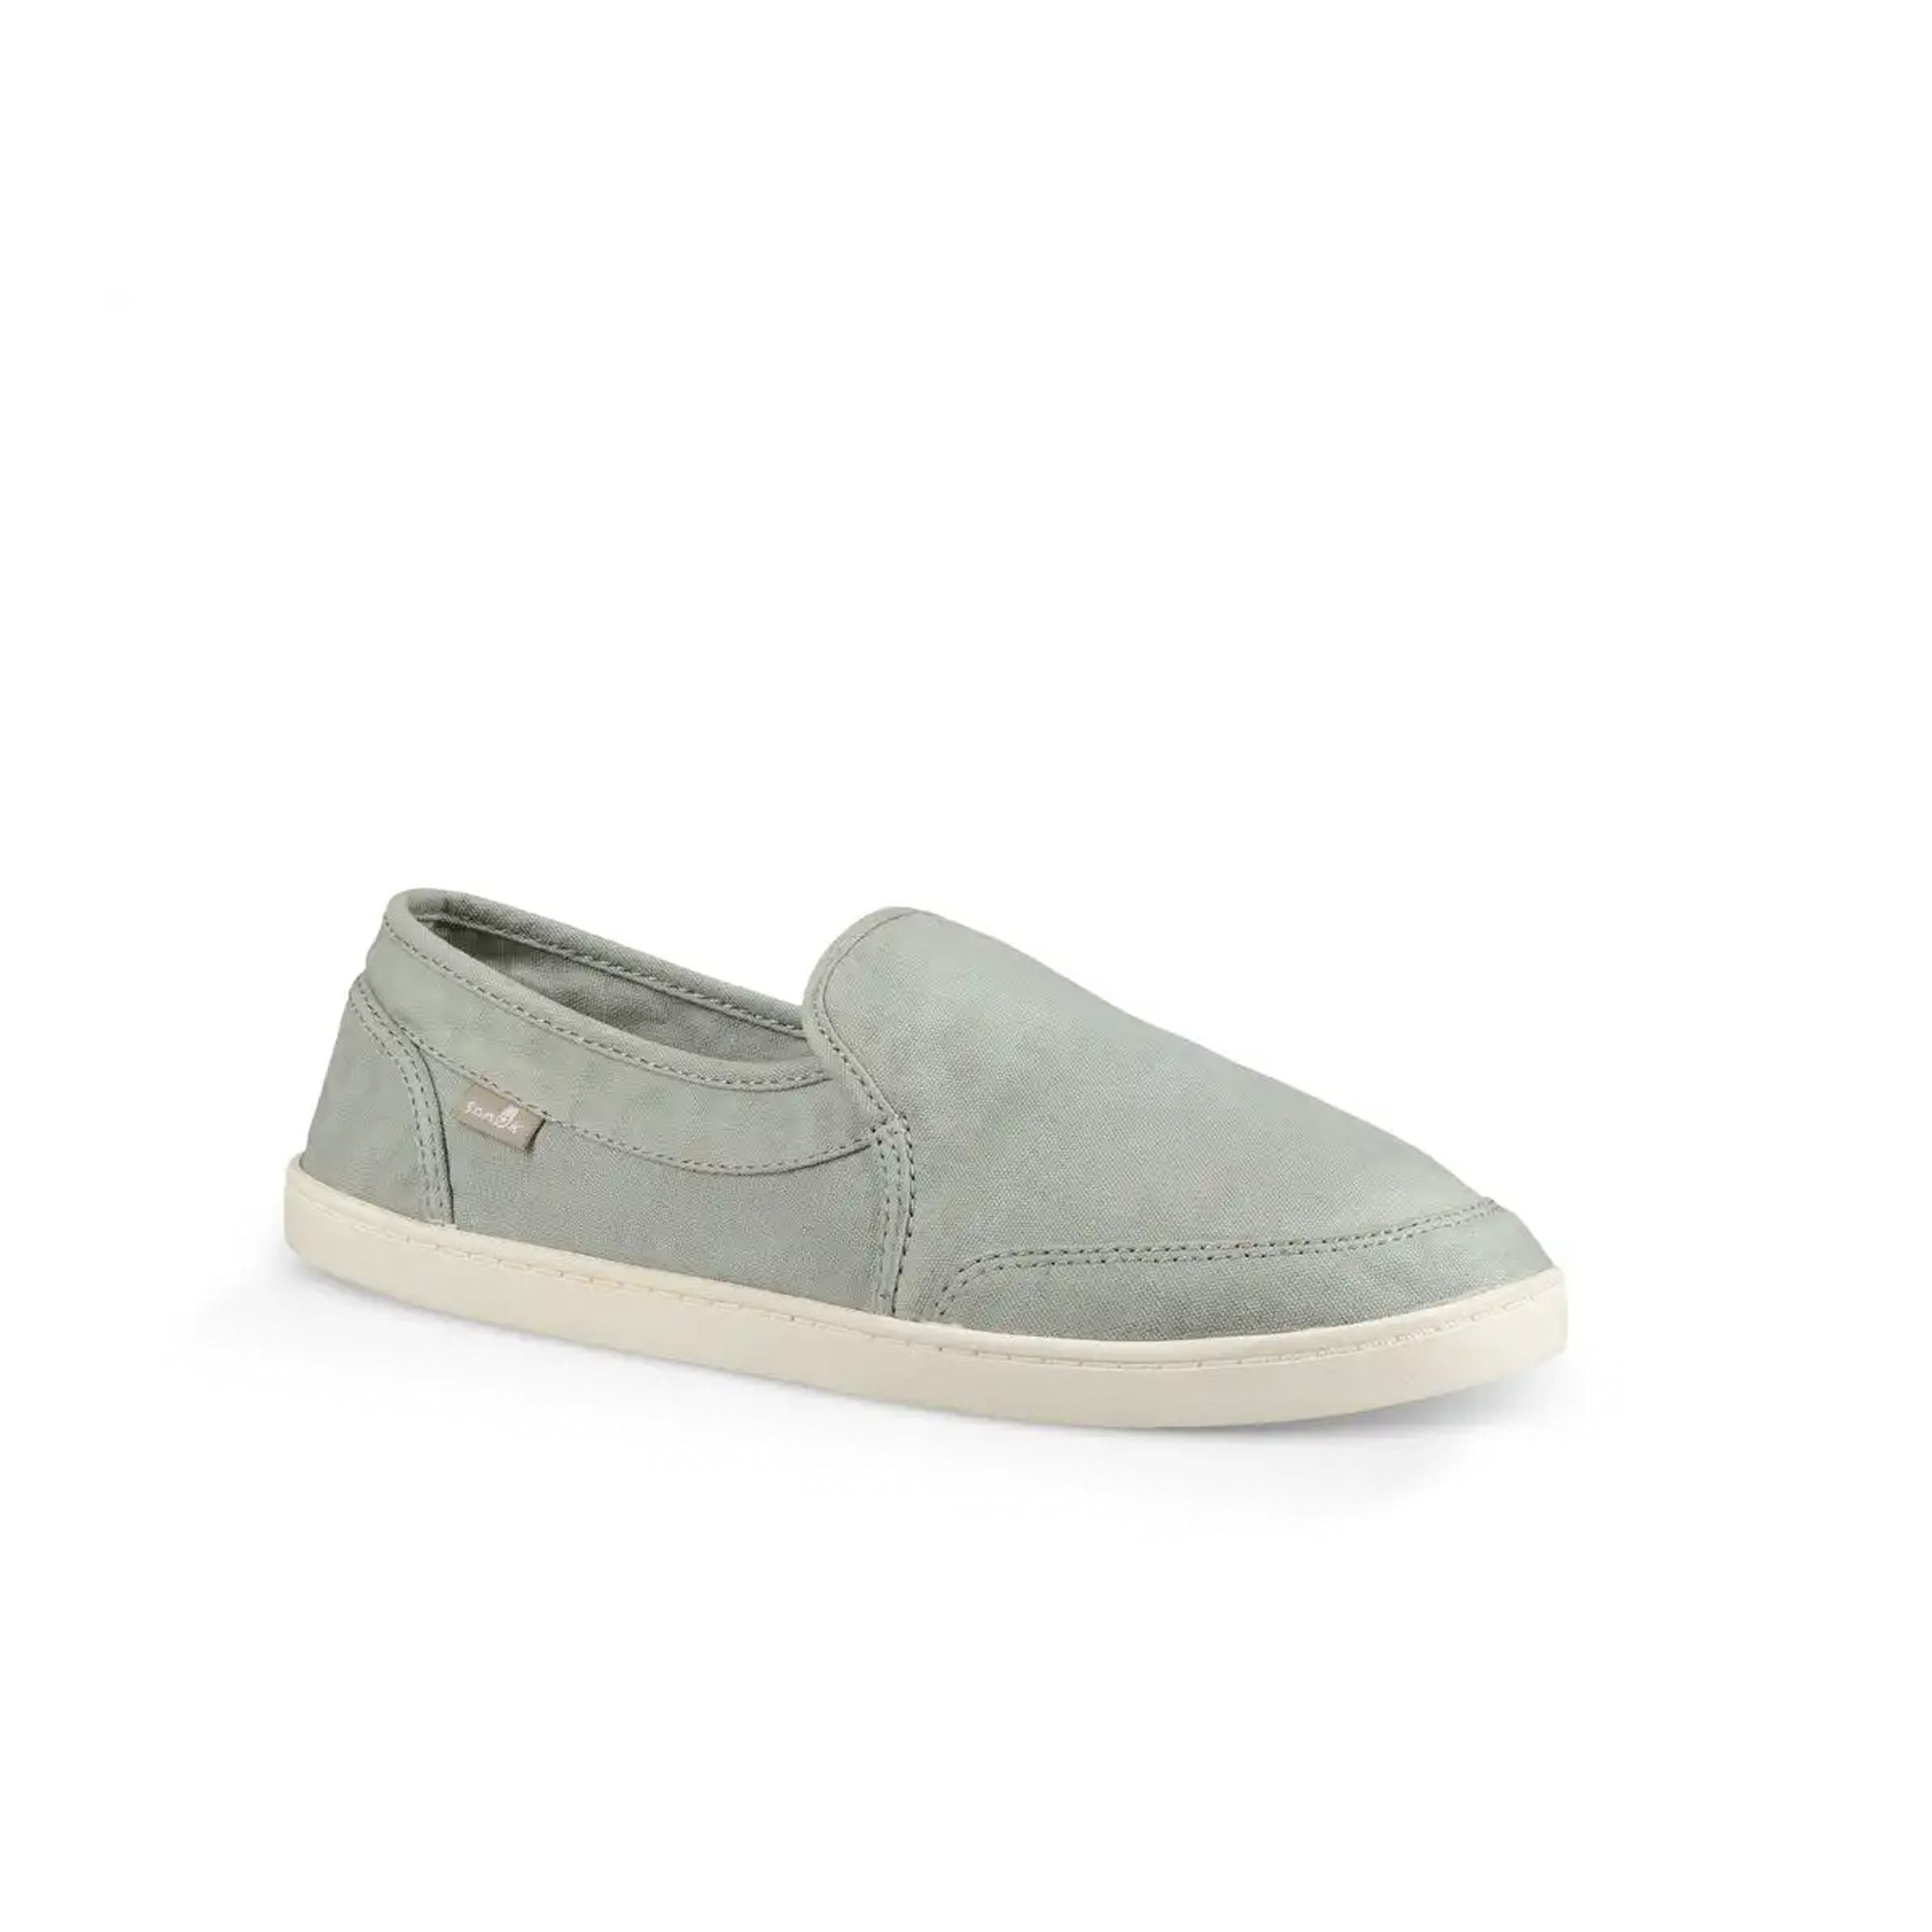 Sanuk Pair O Dice Women's Shoes